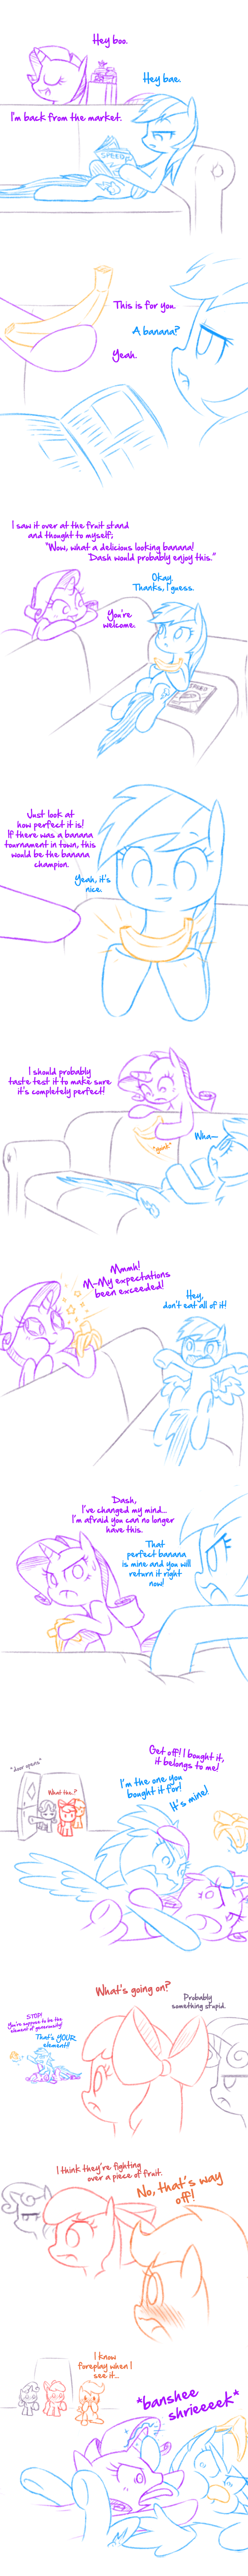 shipping Sweetie Belle apple bloom rarity comic raridash doodles Scootaloo rainbow dash - 9068285184